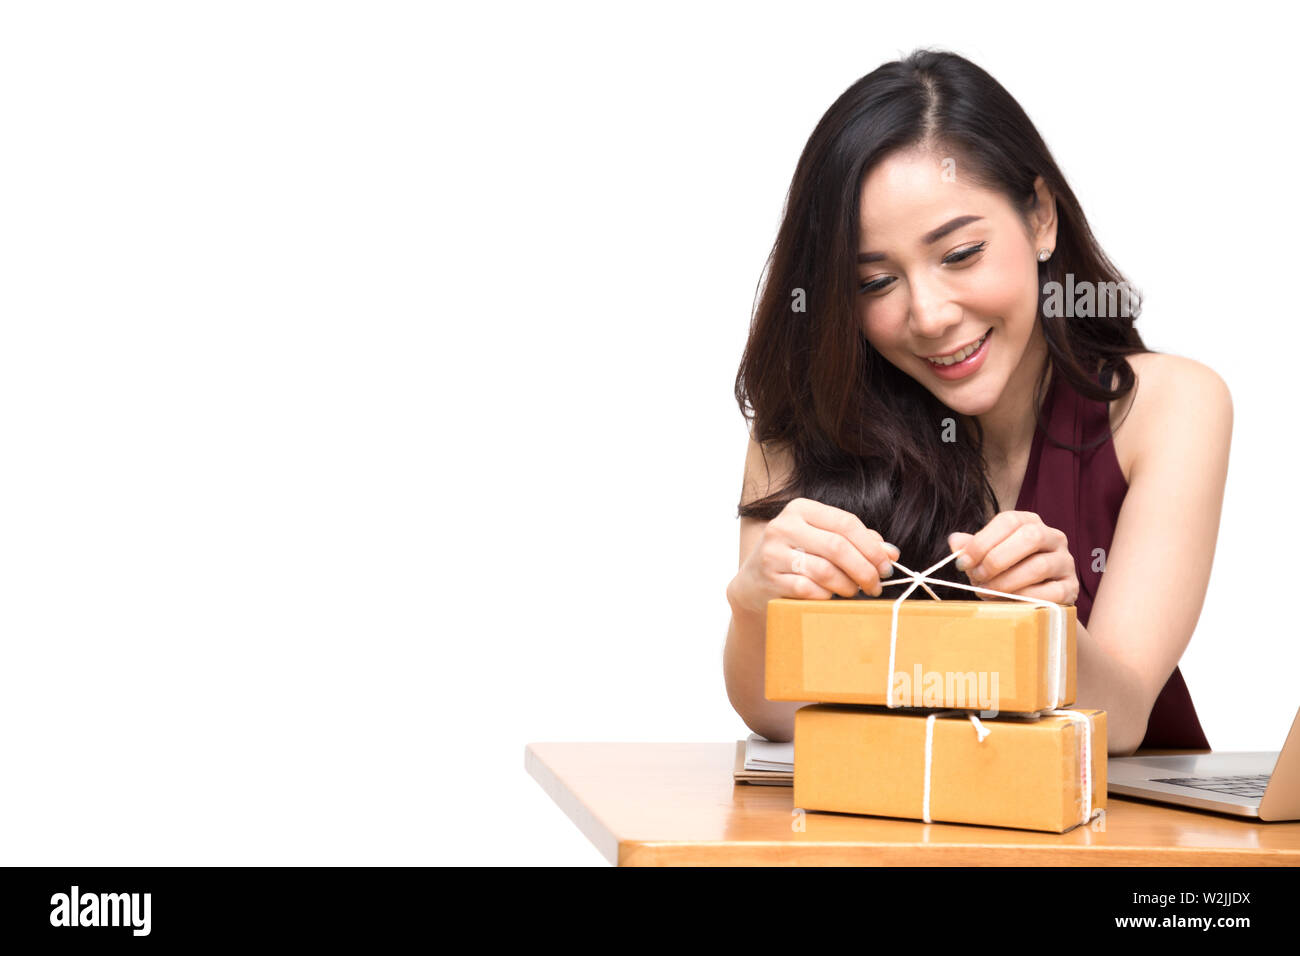 Asian women packing parcel on the table and white background, Female receive cardboard box from buying online orders, Shipping delivery and shopping b - Stock Image